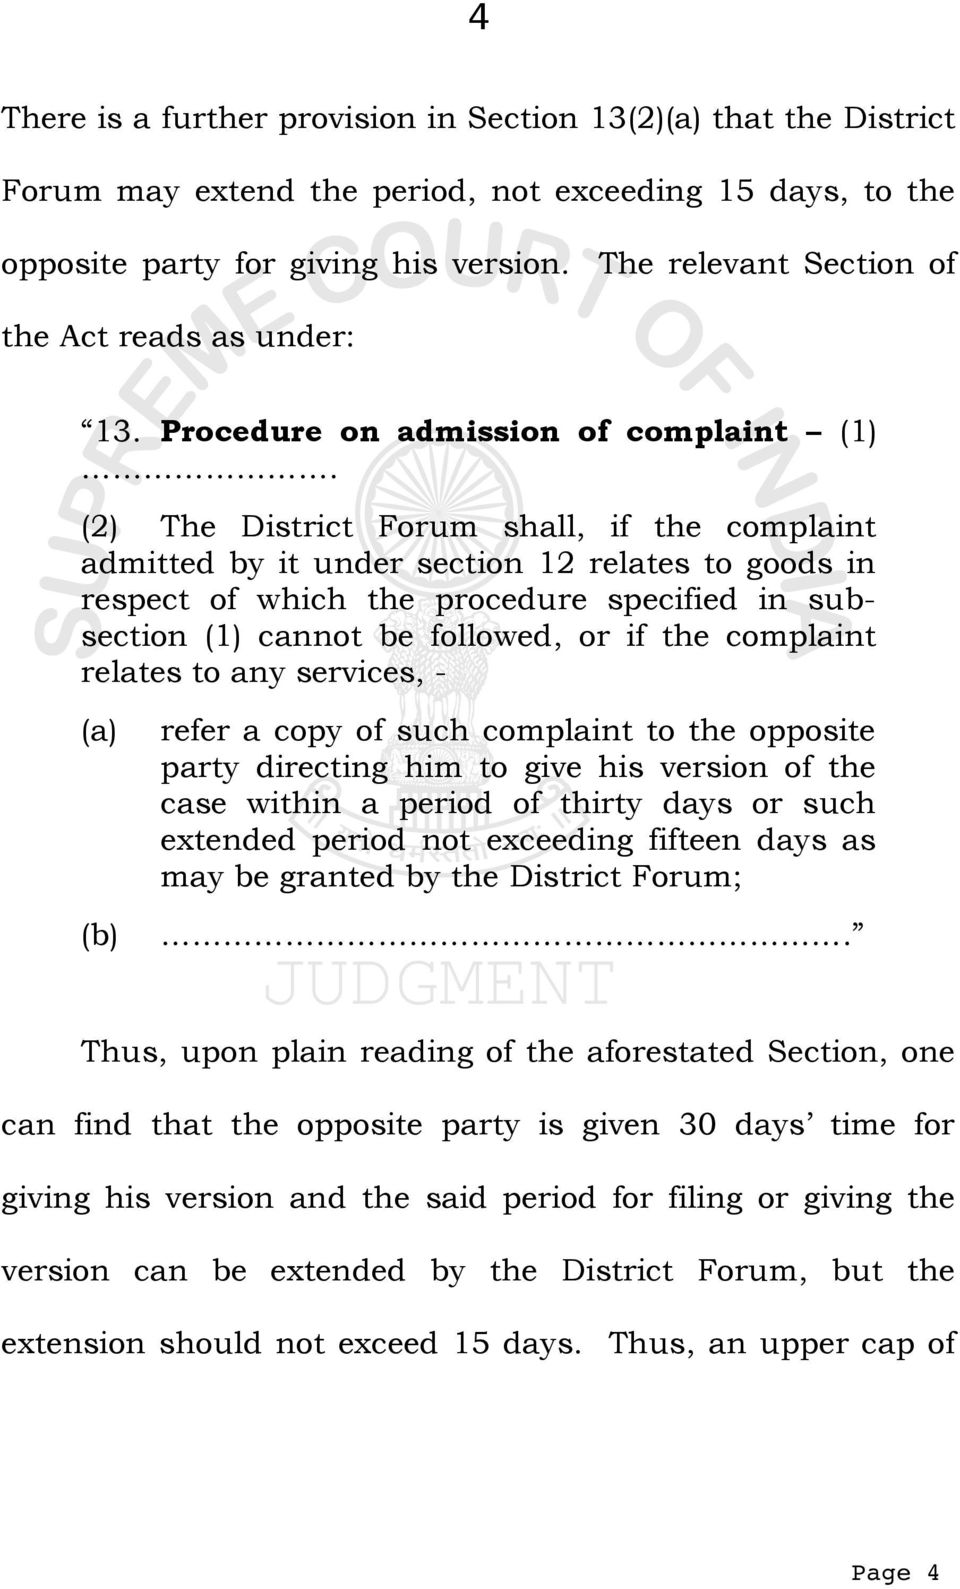 (2) The District Forum shall, if the complaint admitted by it under section 12 relates to goods in respect of which the procedure specified in subsection (1) cannot be followed, or if the complaint